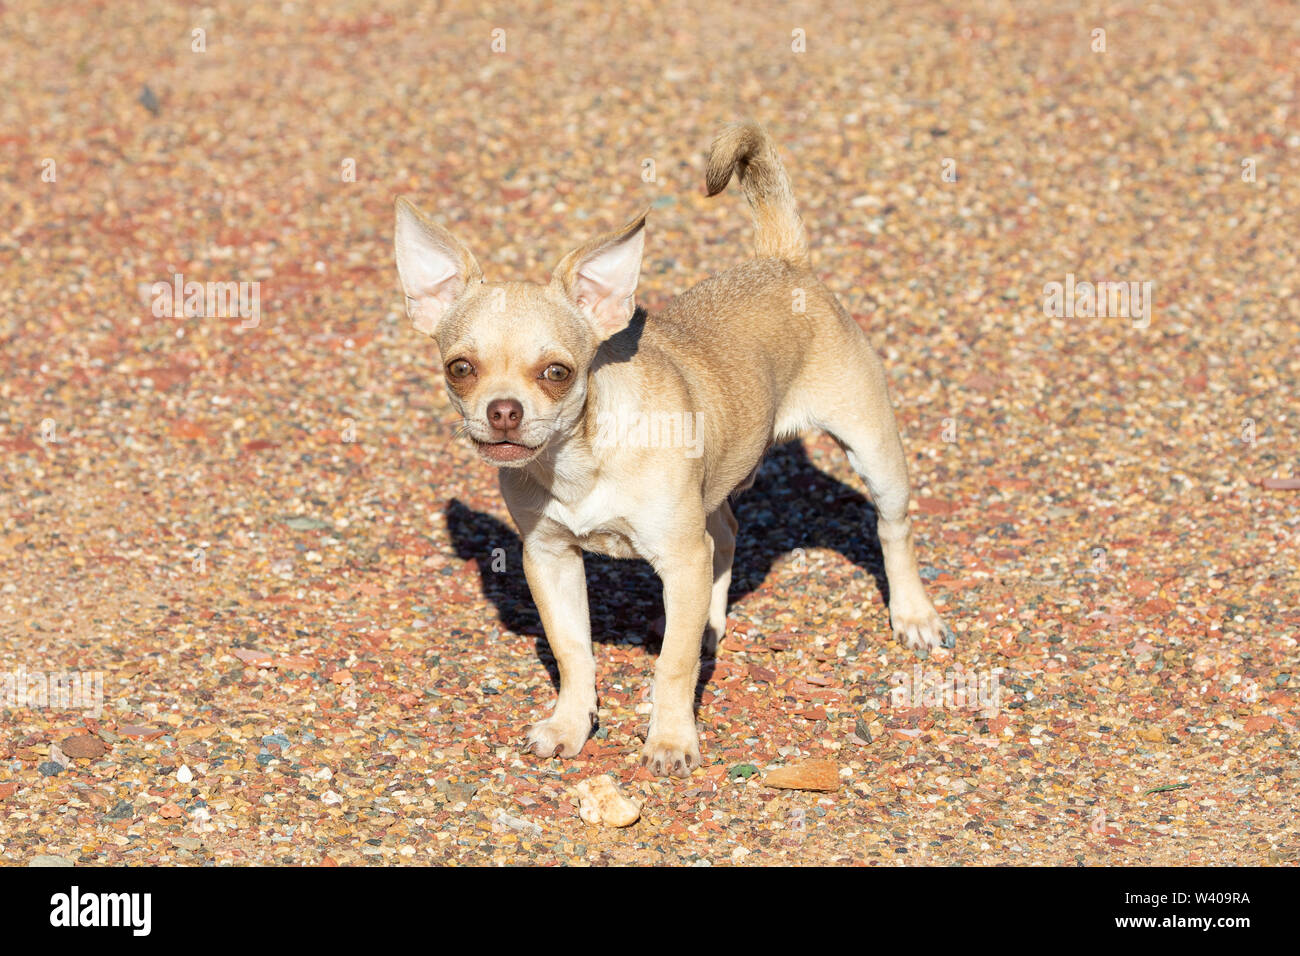 Feisty little fawn coloured pedigreed  male Chihuahua dog barking at the camera  outdoors on gravel protecting its property - Stock Image